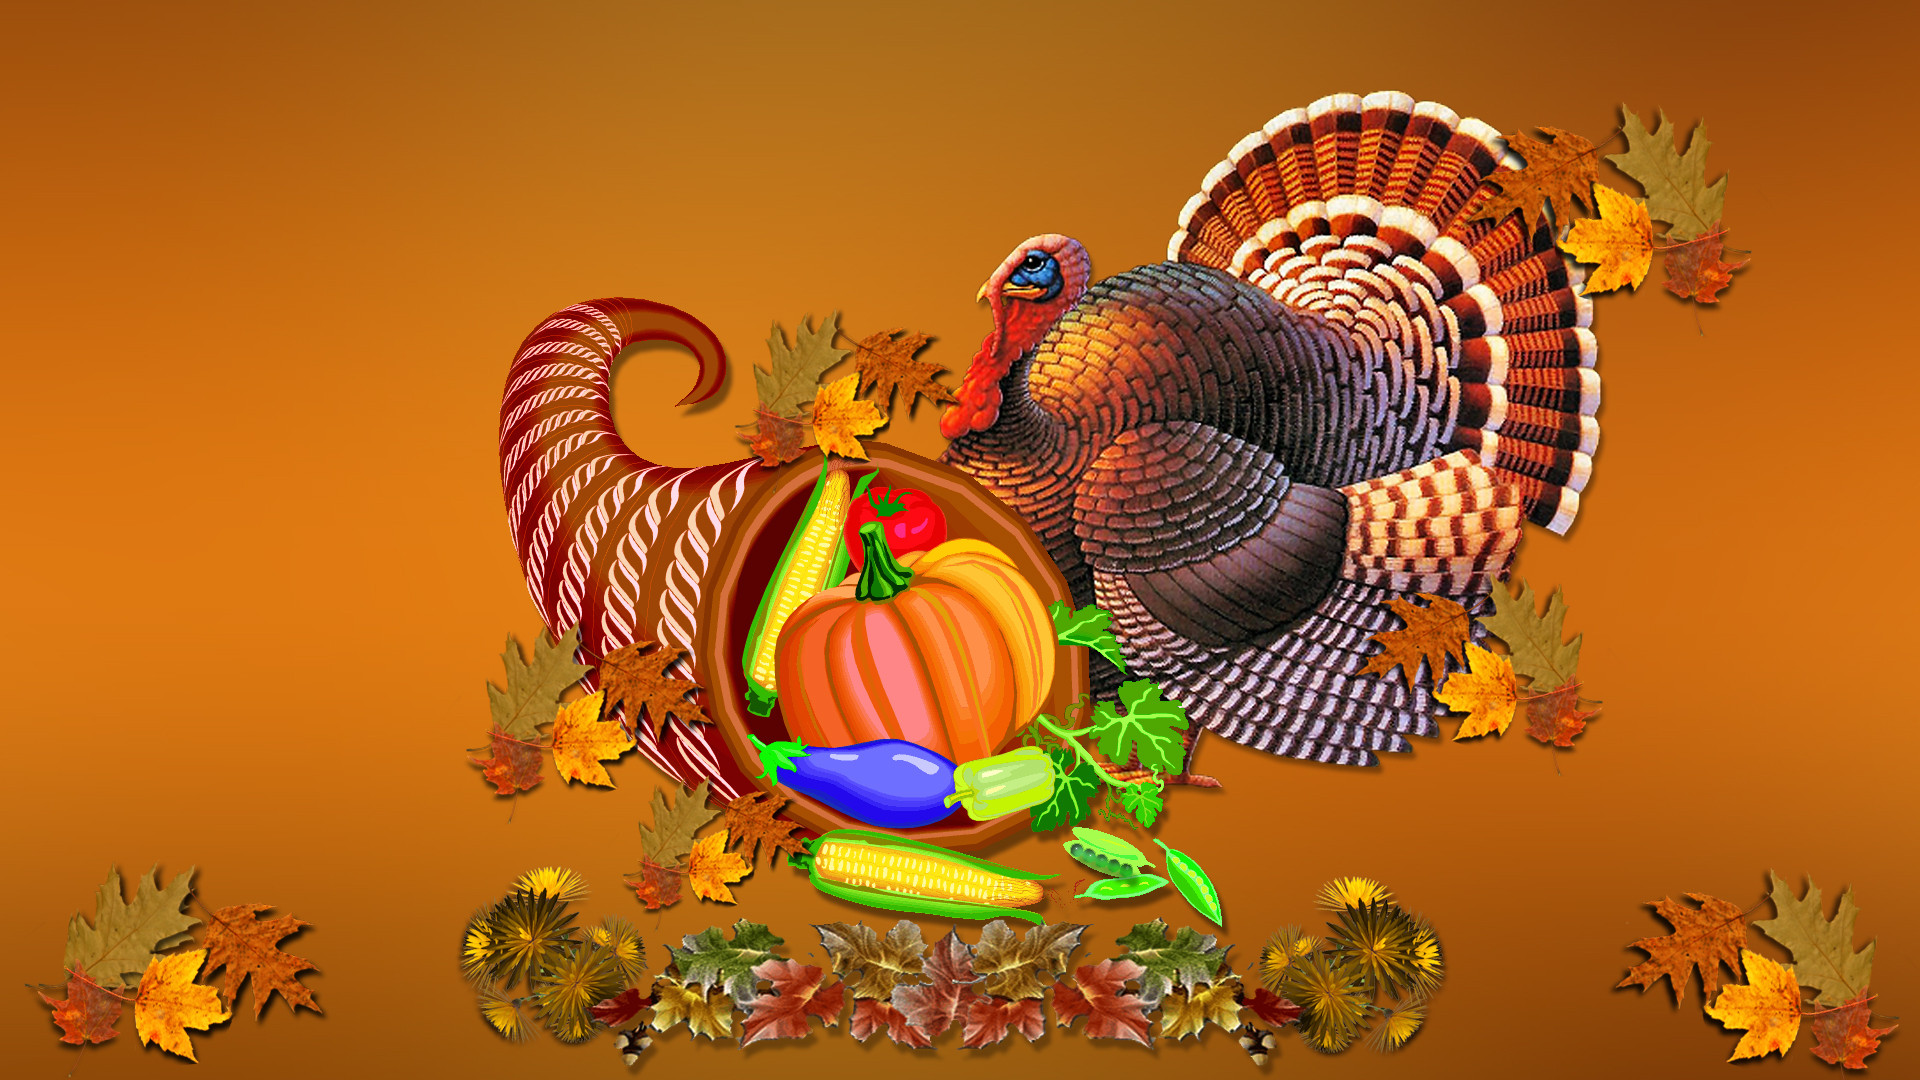 Thanksgiving Turkey Wallpaper  25 Happy Thanksgiving Day 2012 HD Wallpapers – Designbolts